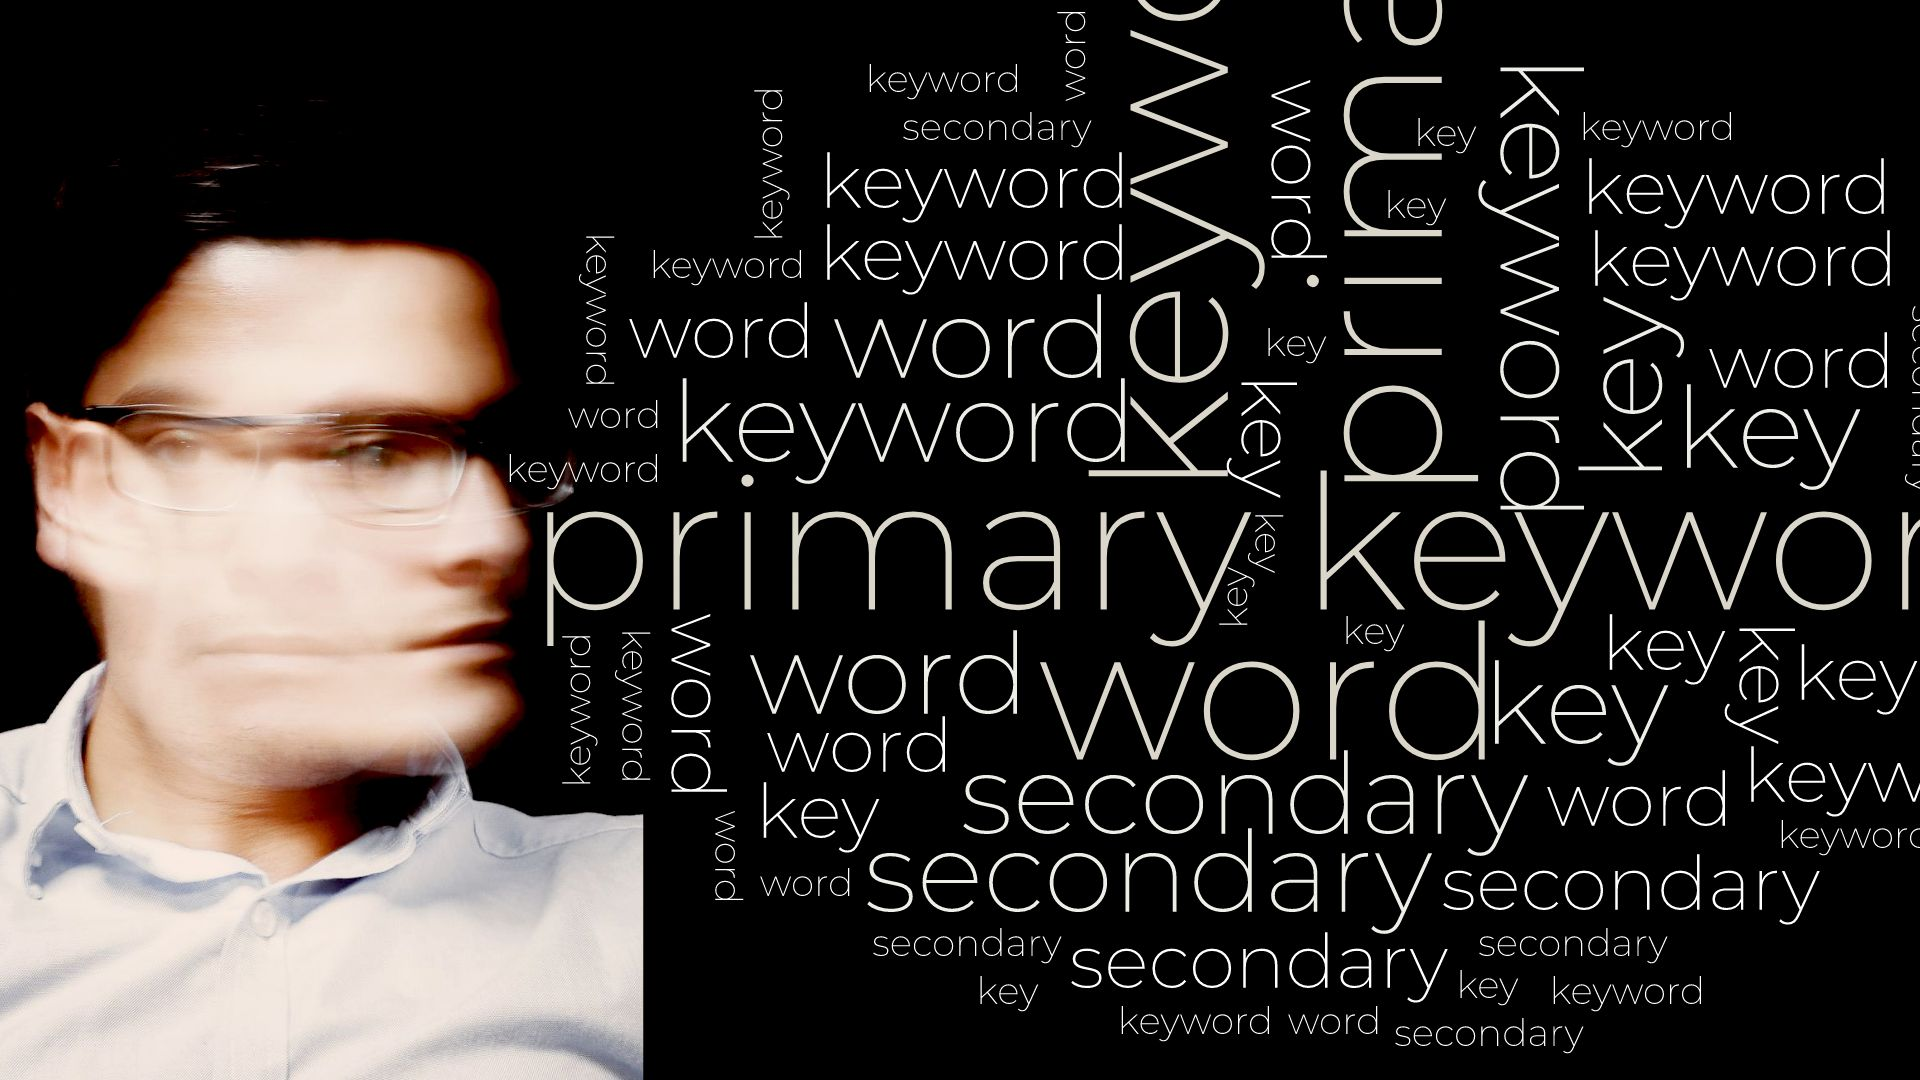 Primary Keywords